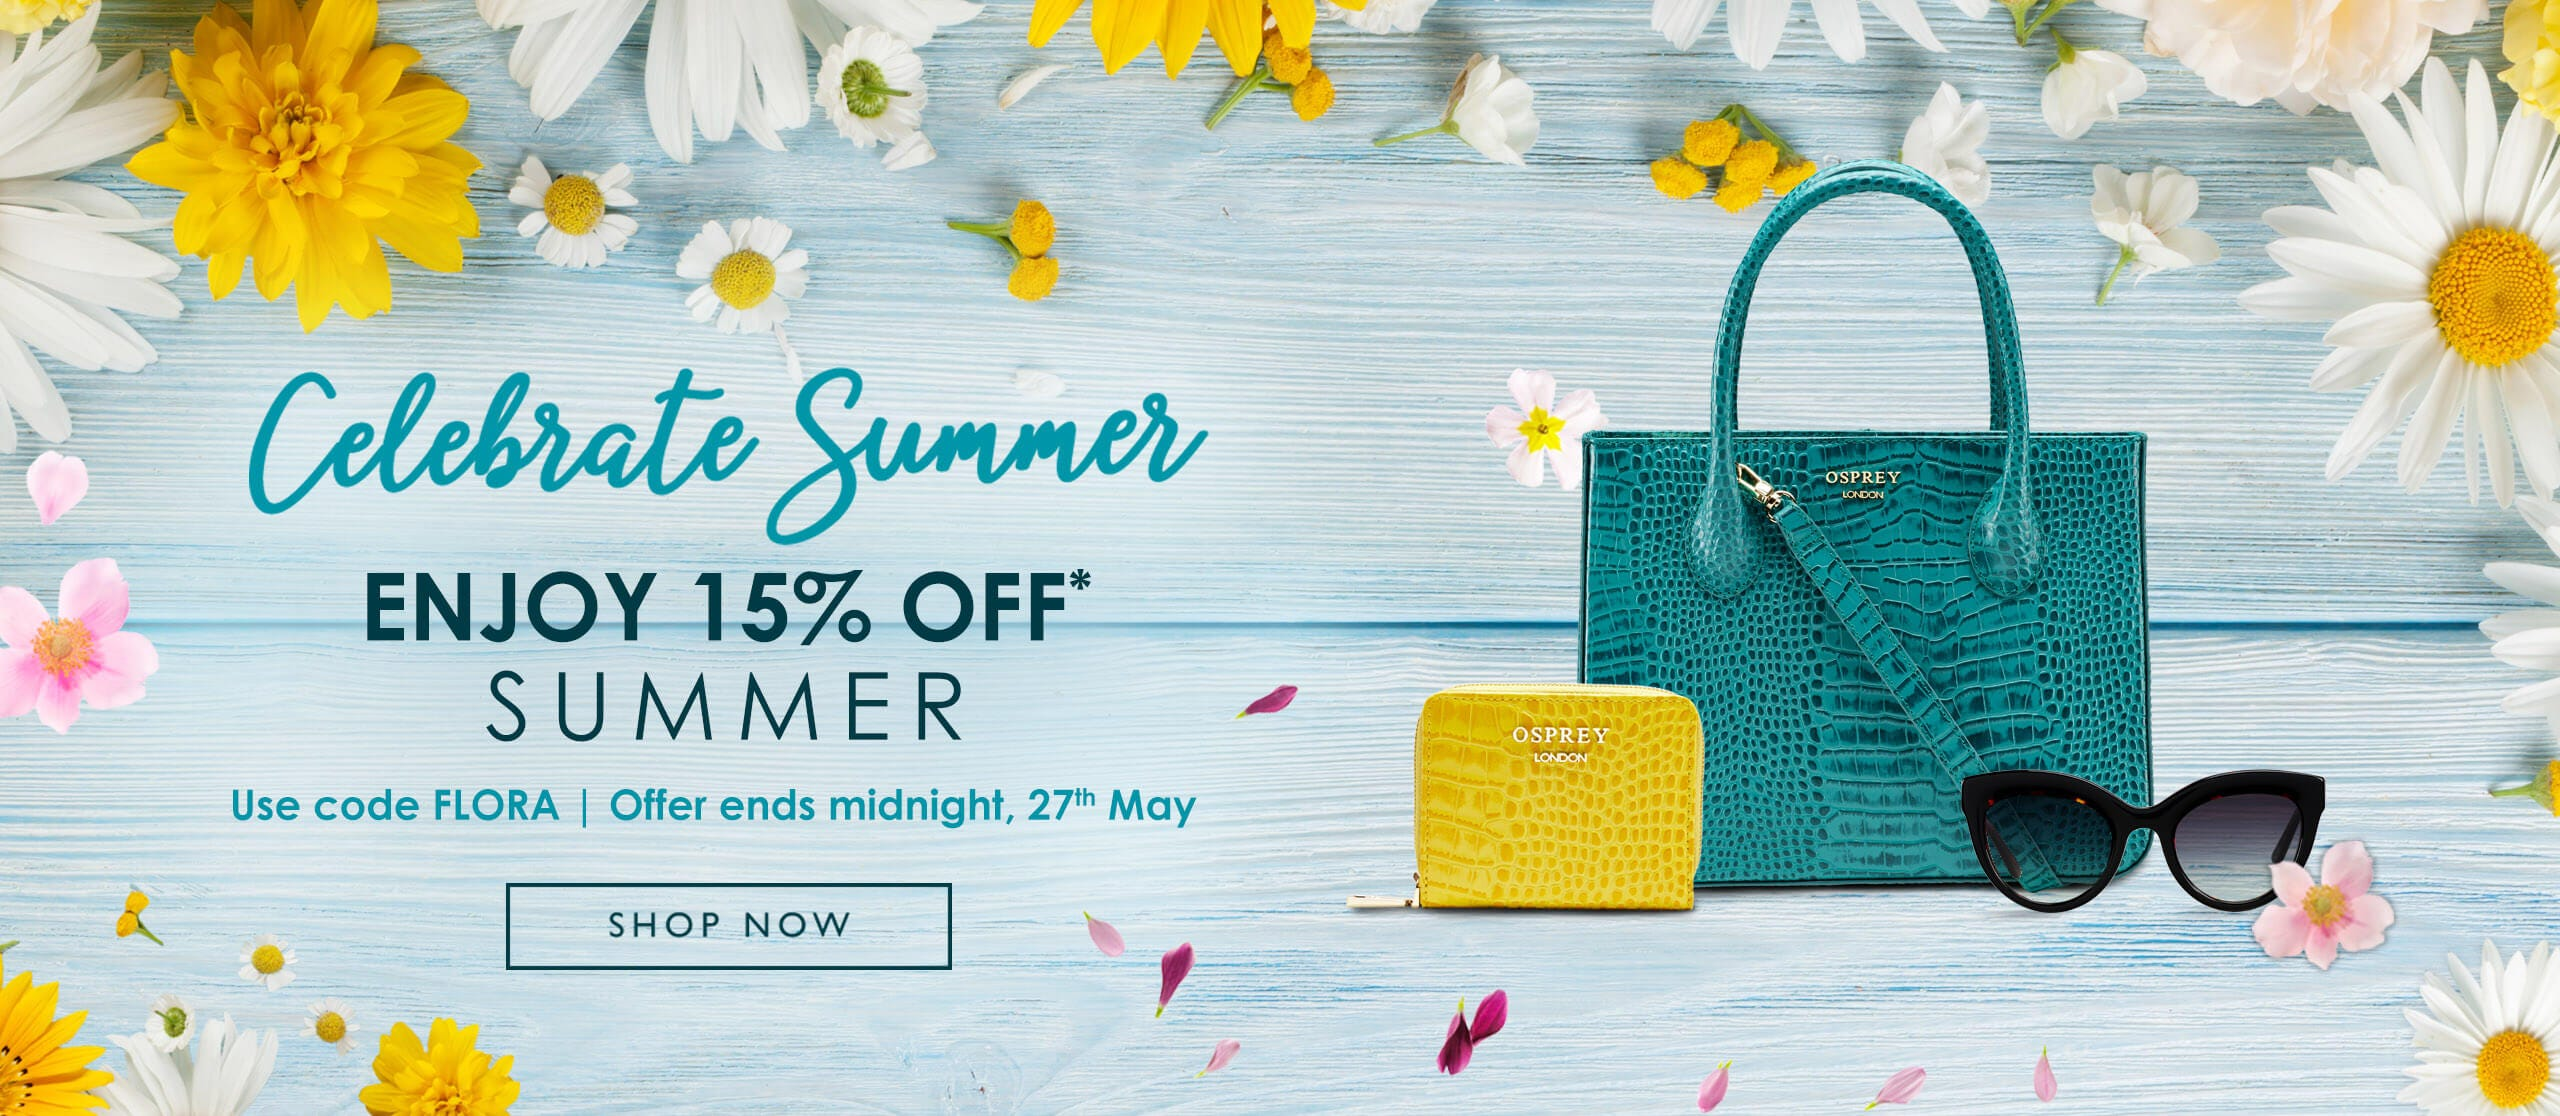 Enjoy 15% off with code FLORA